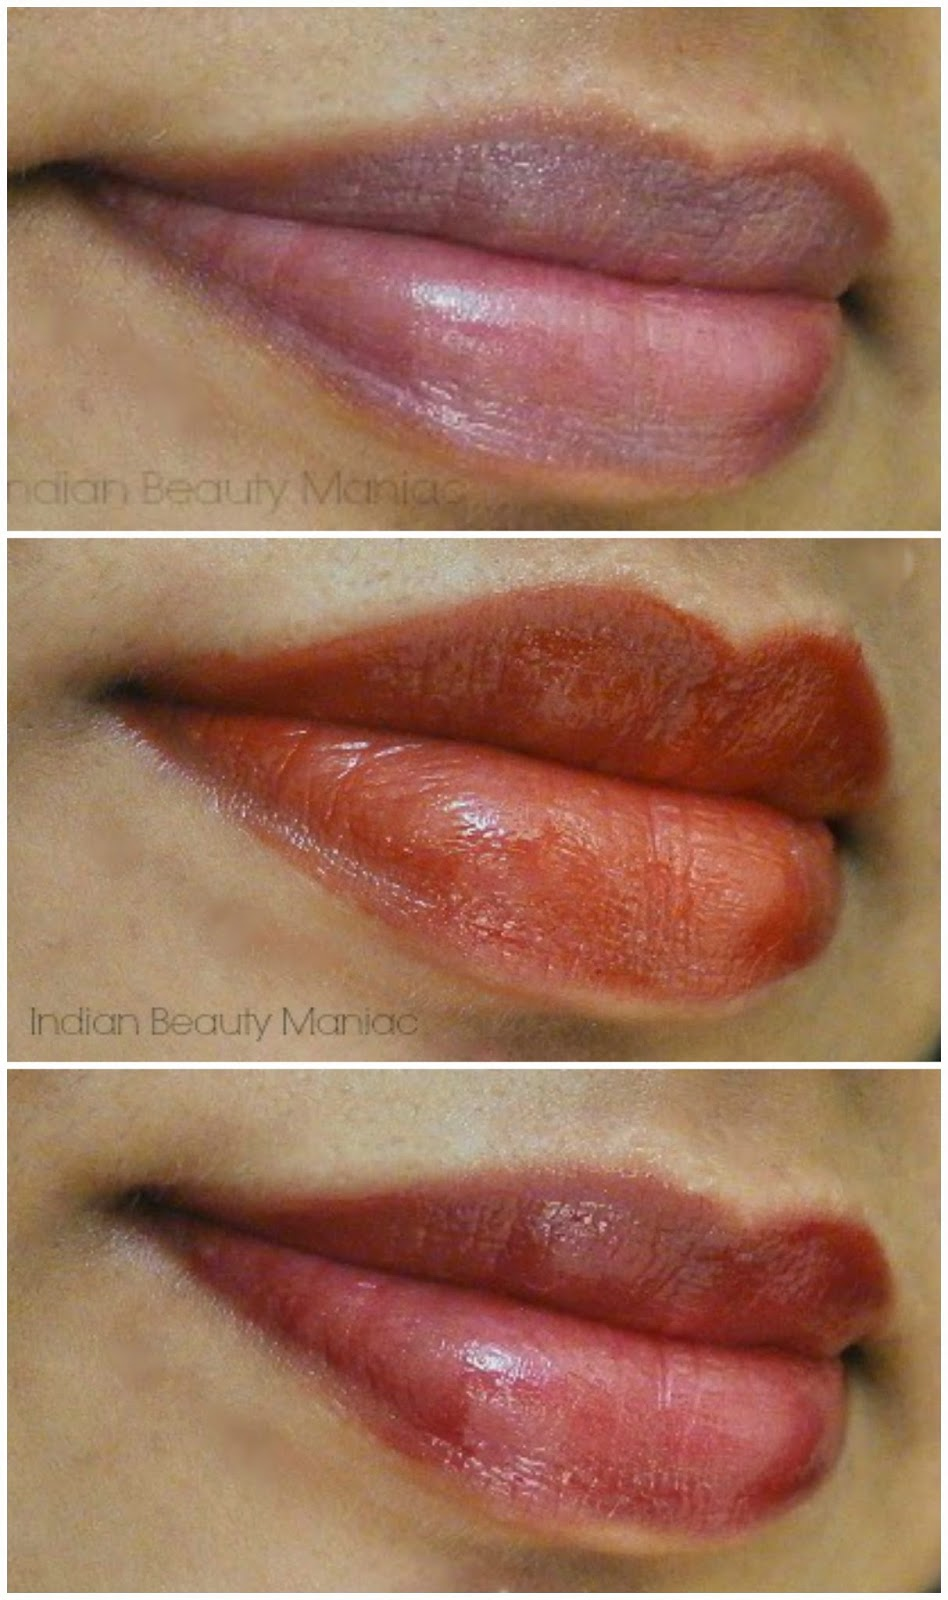 L'Oréal Paris Shine Caresse Light Weight Lip Color in Milady, Eve and Juliette LOTD